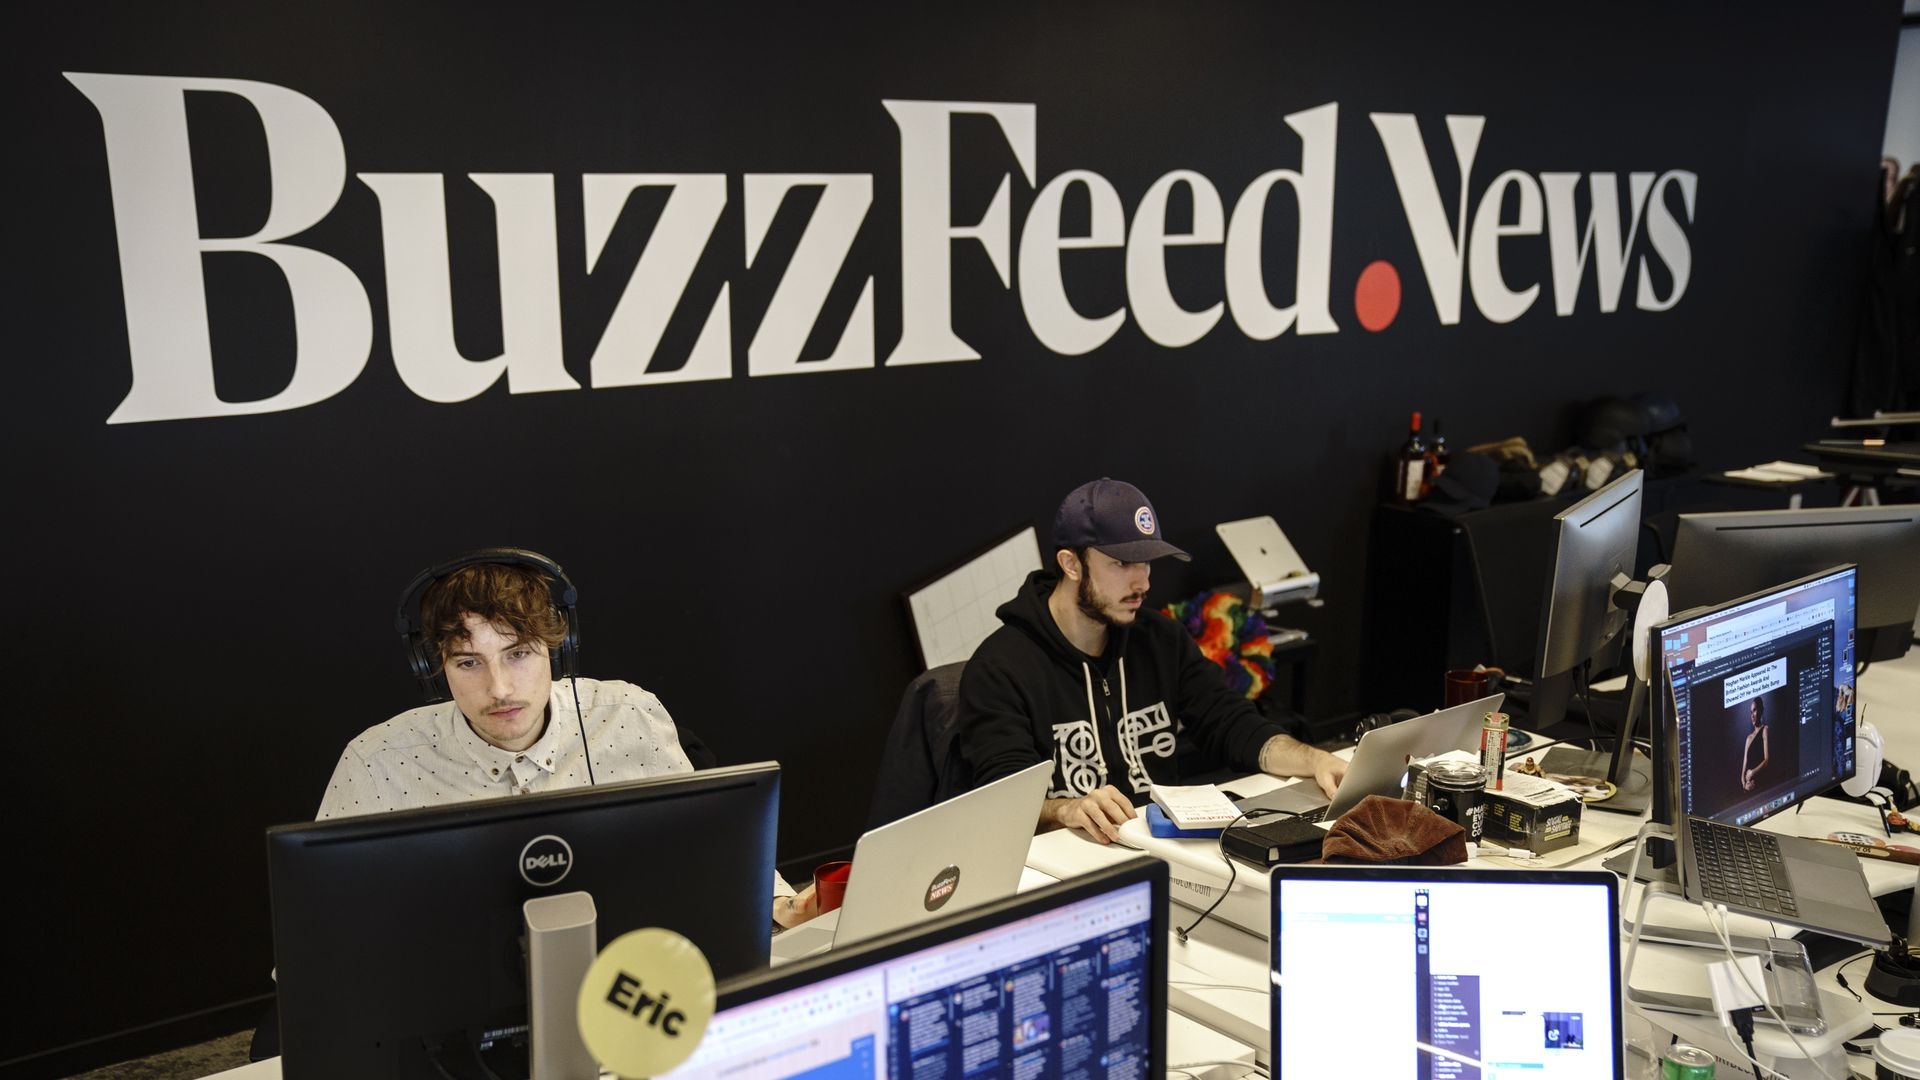 Employees working at BuzzFeed